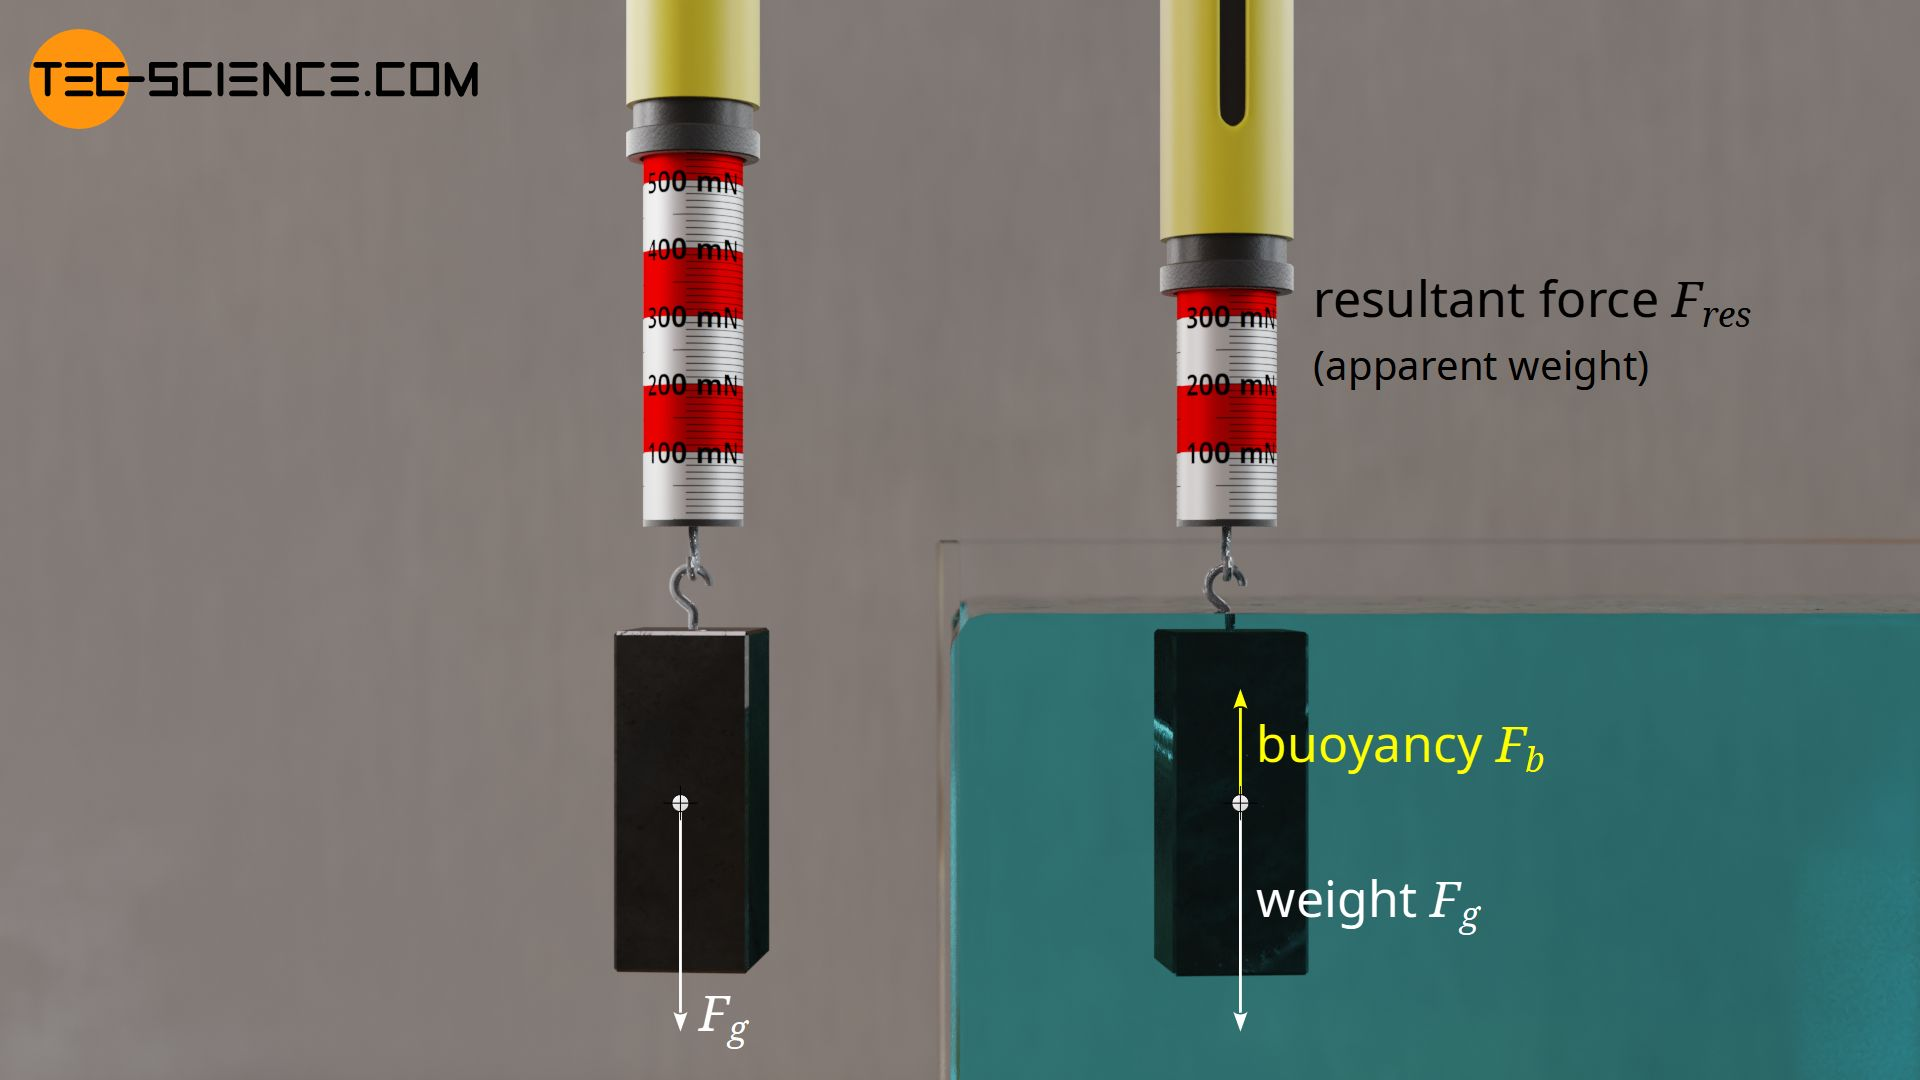 Apparent reduction in weight due to the buoyancy acting in a liquid